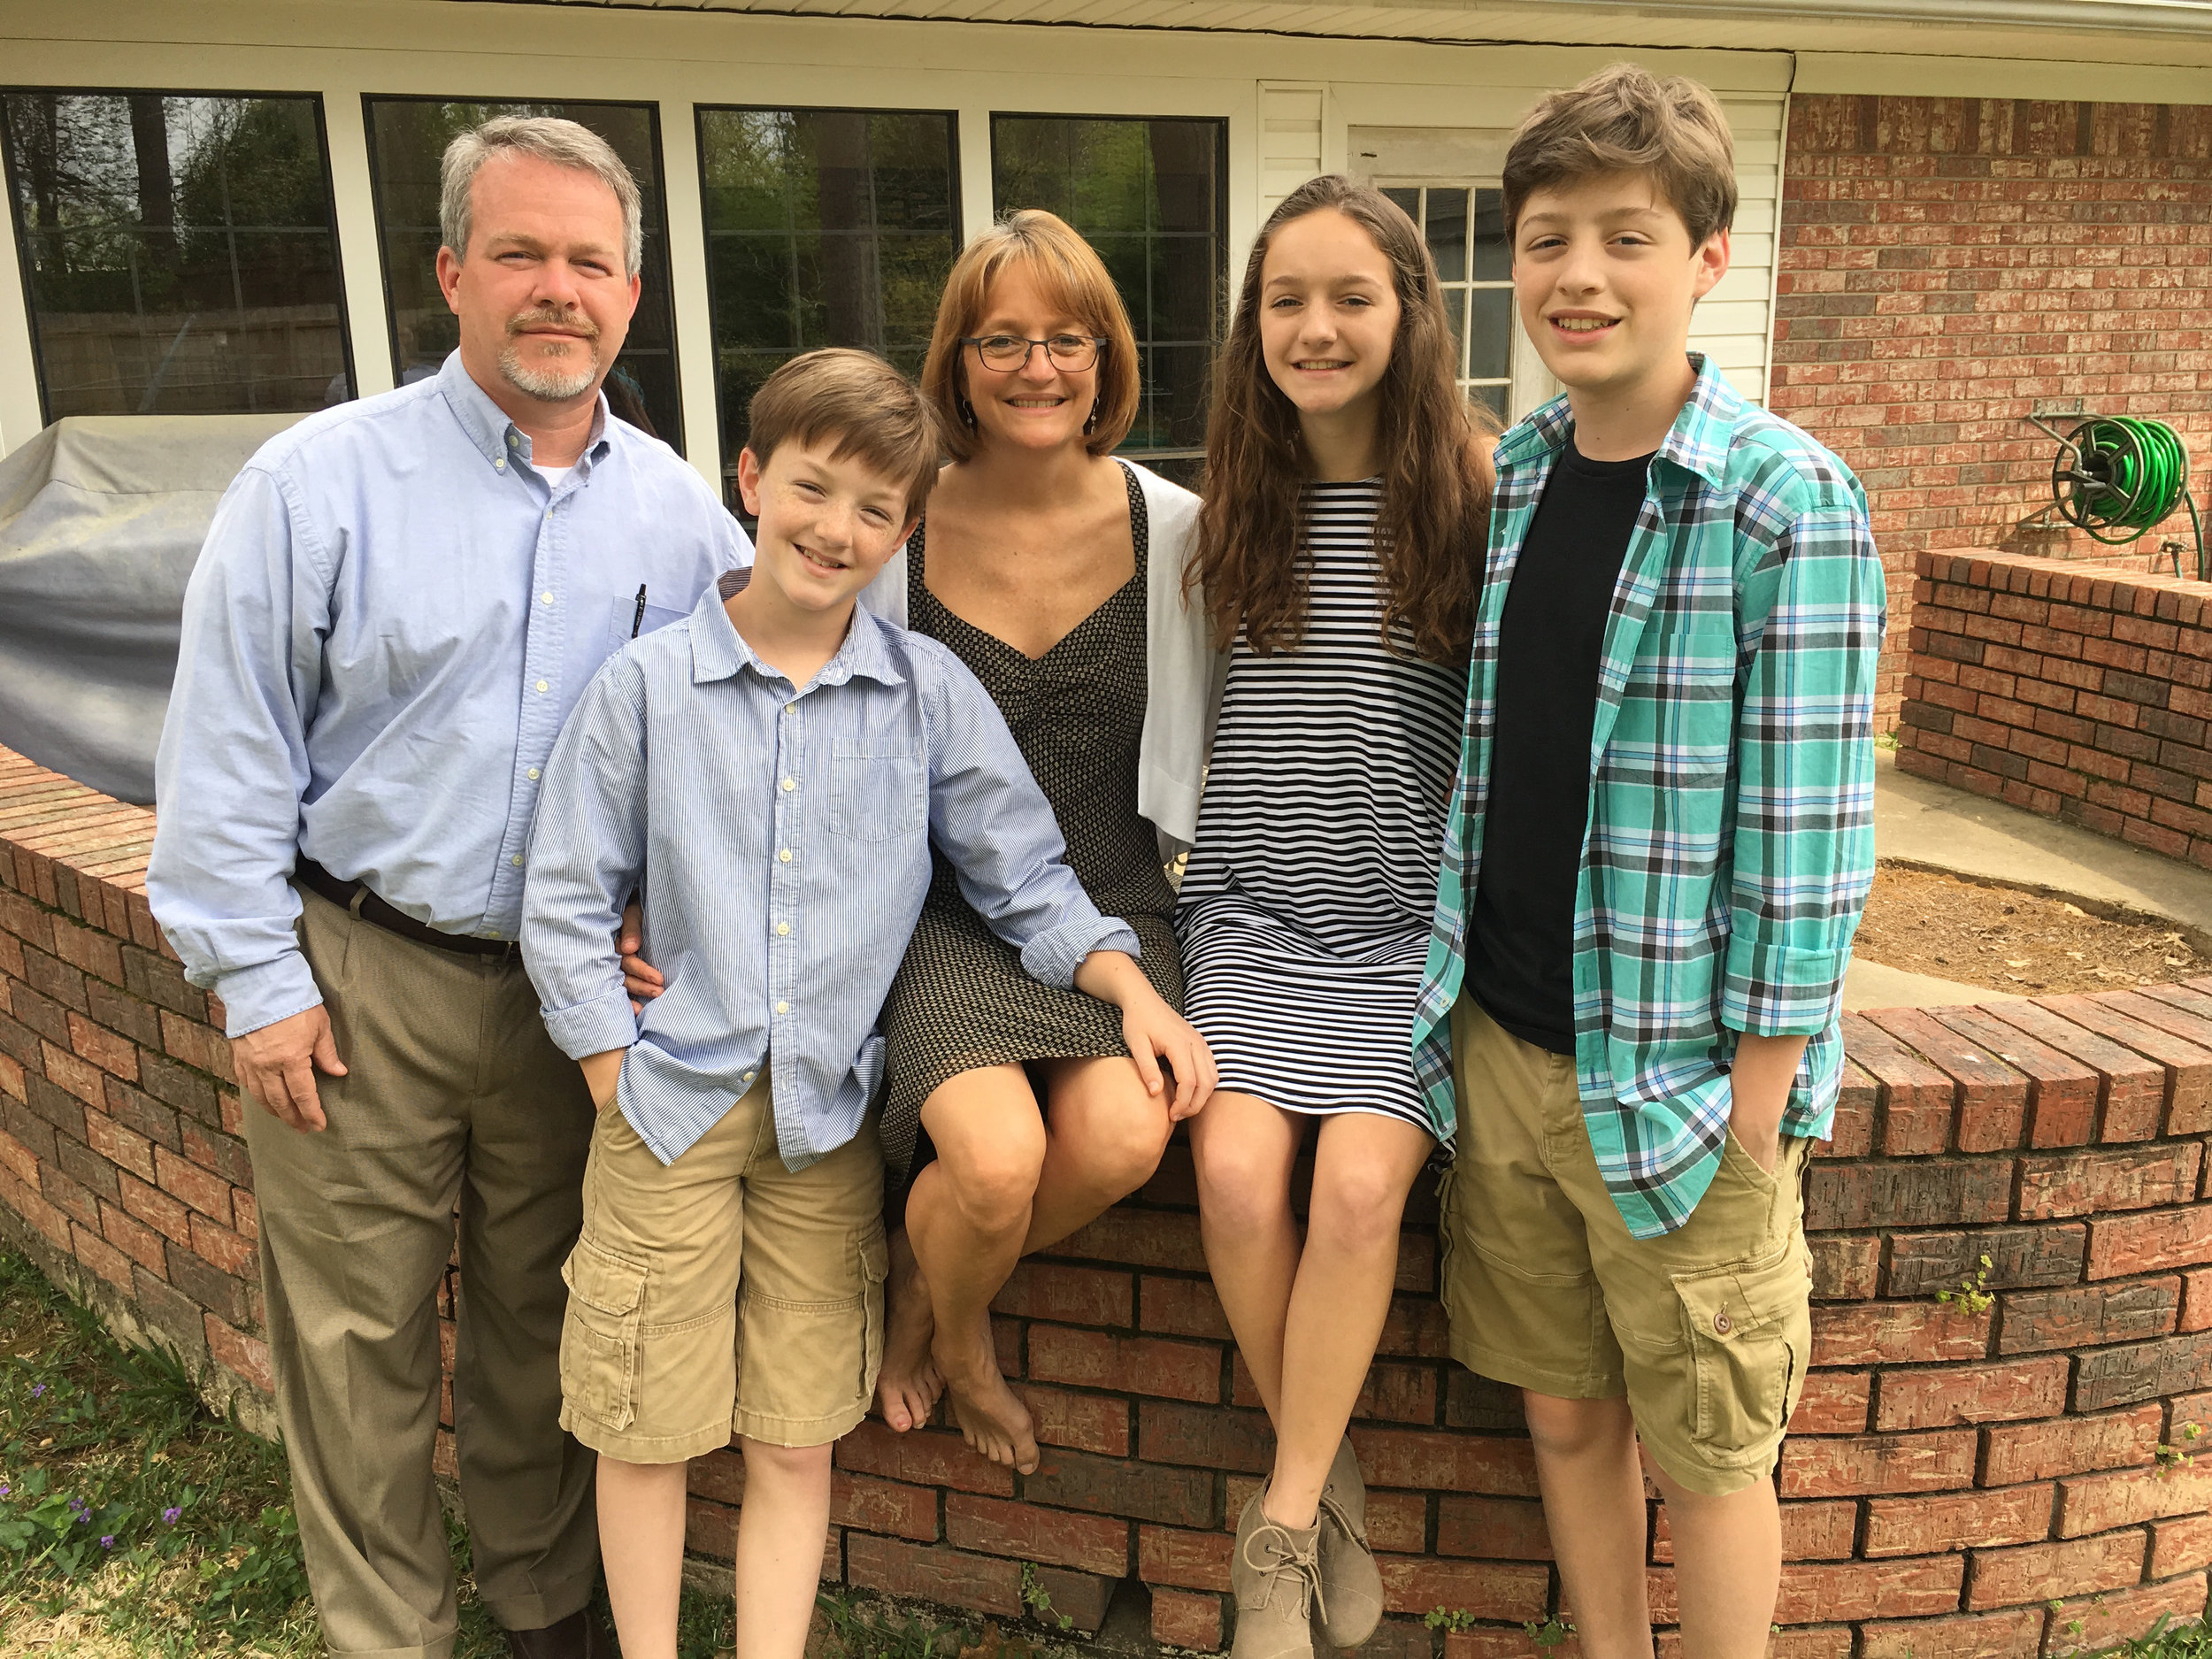 Jim and Belinda with their children, Andrew, Katie and Nathan, this past Easter.